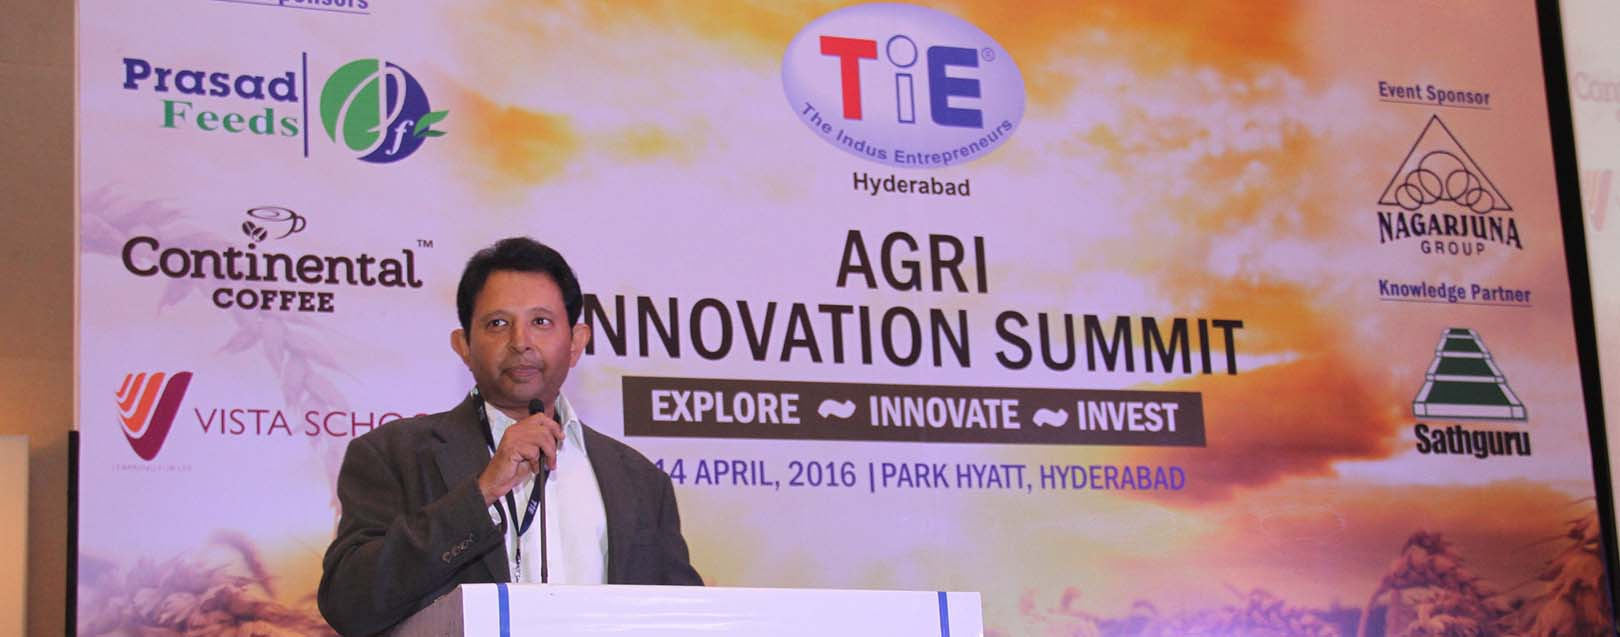 Adopting new technologies can improve agri exports